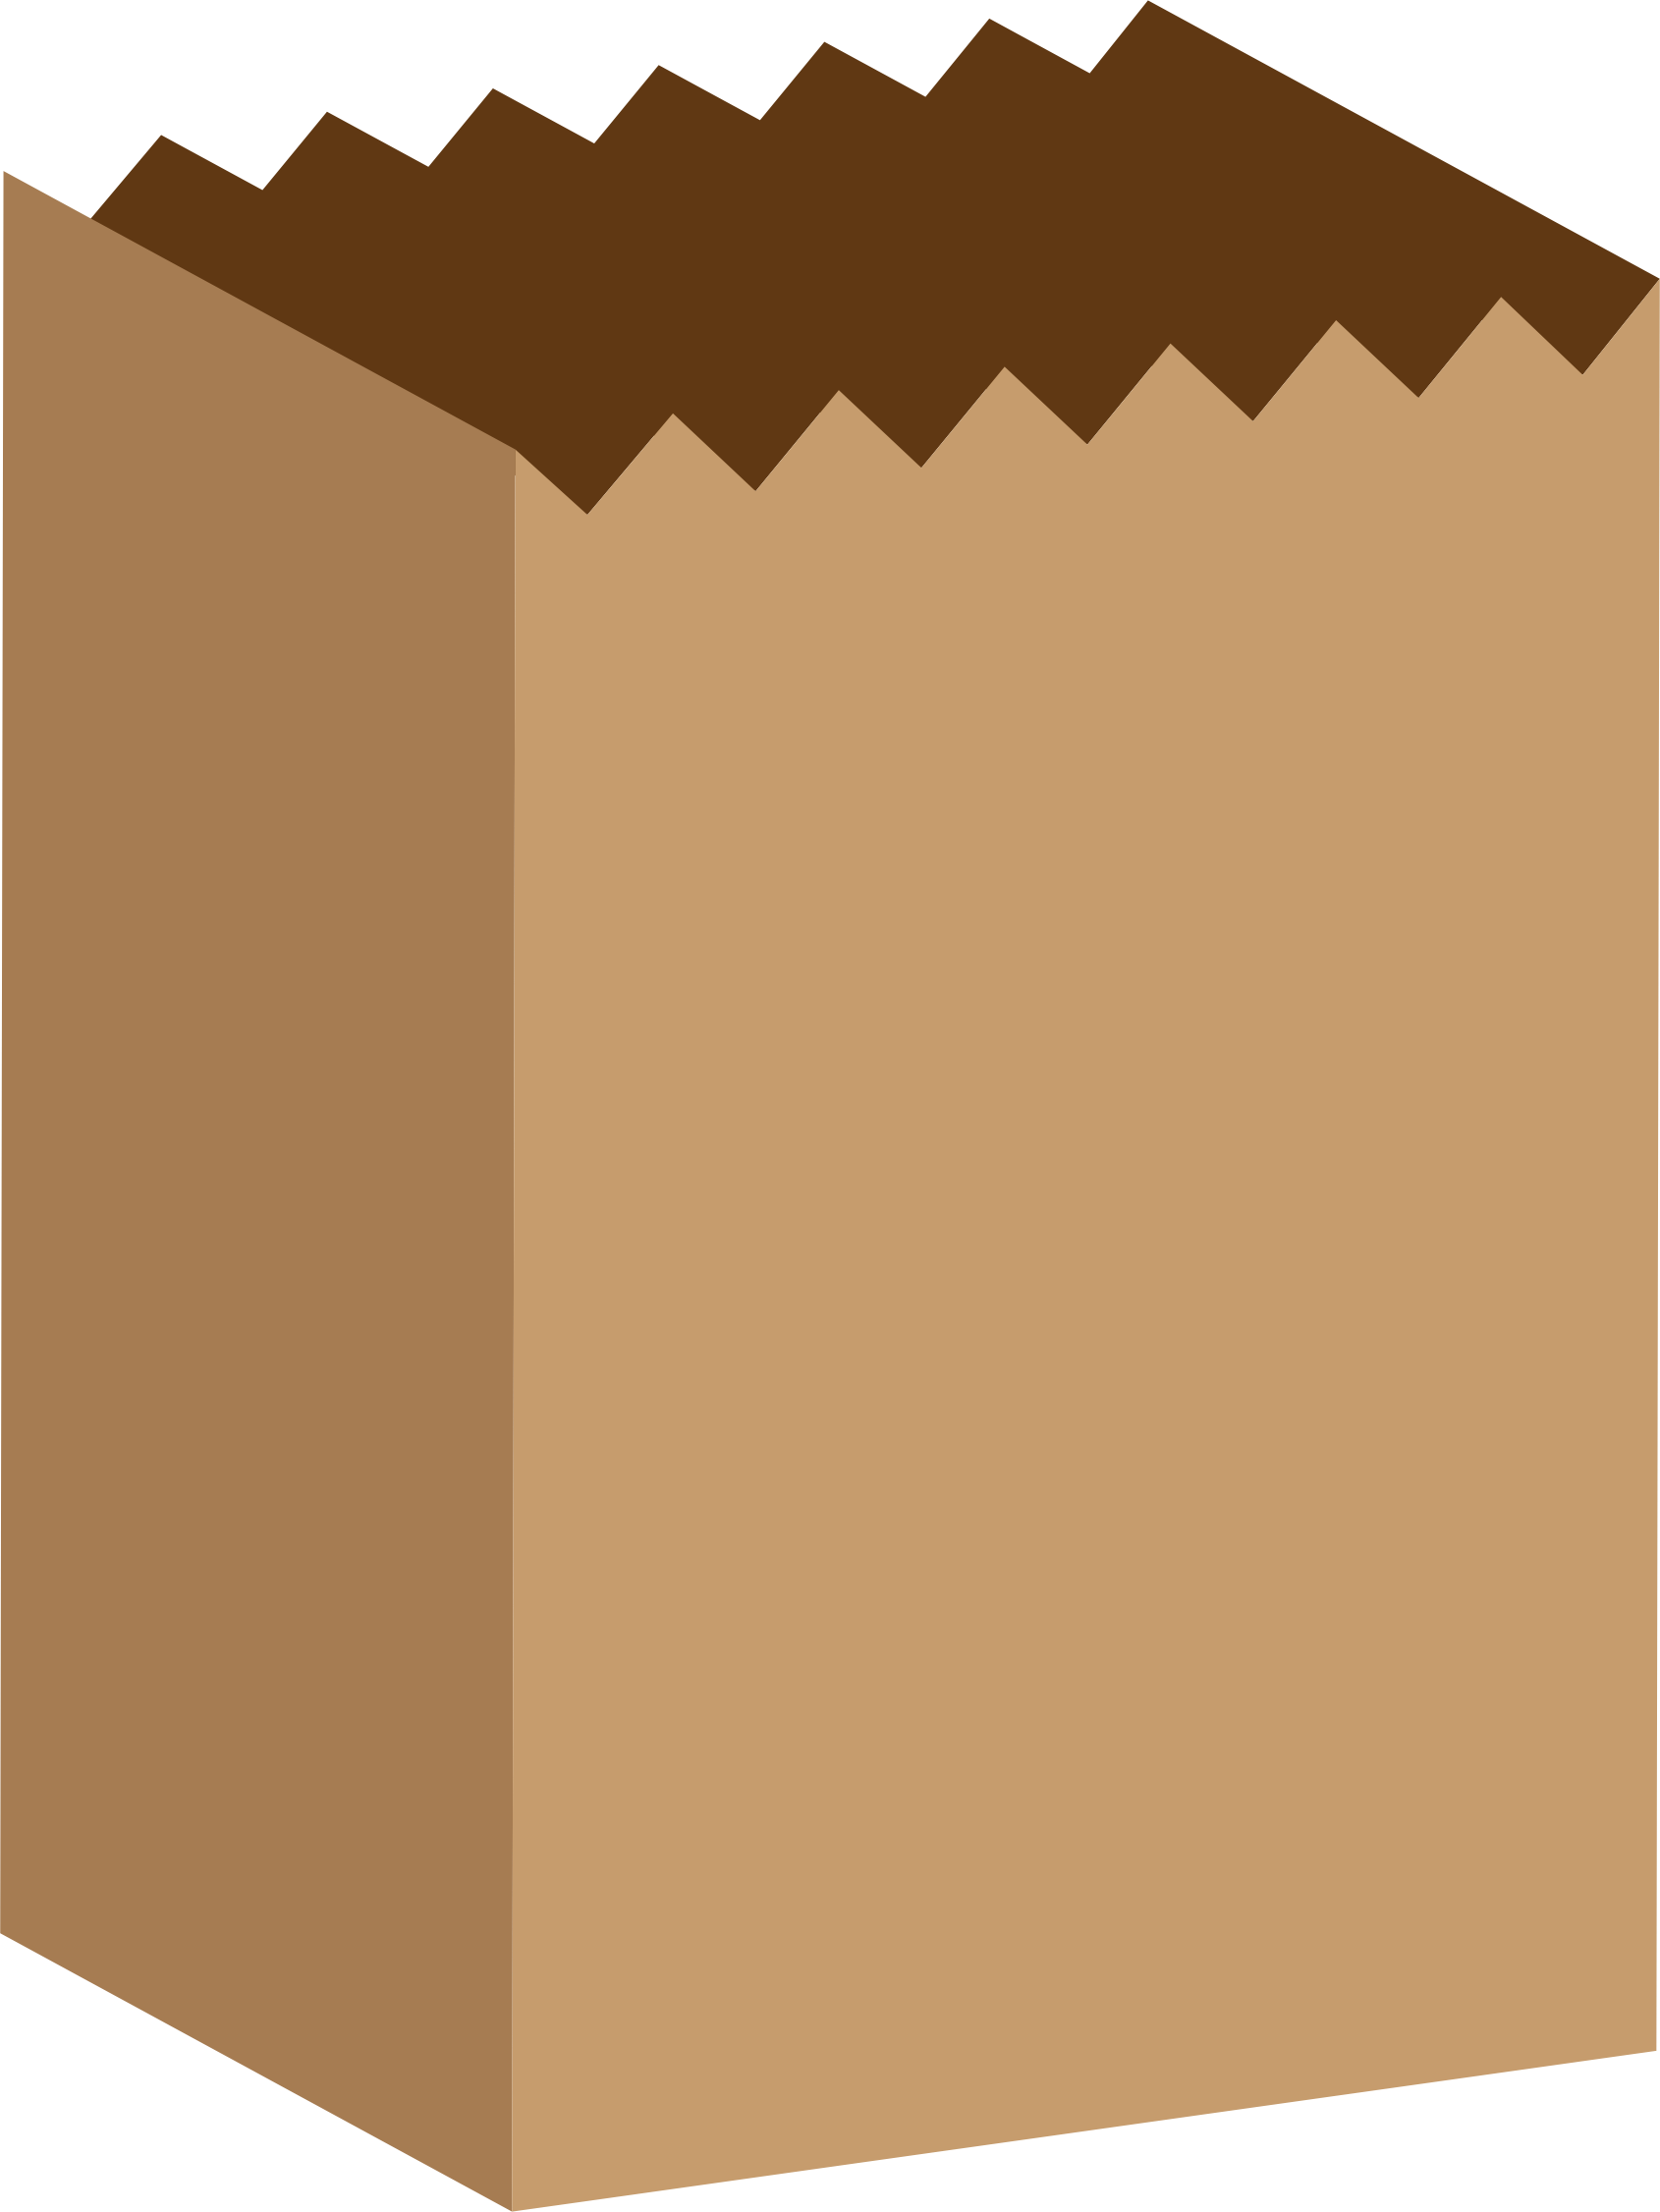 Simple Paper Bag by jgm104